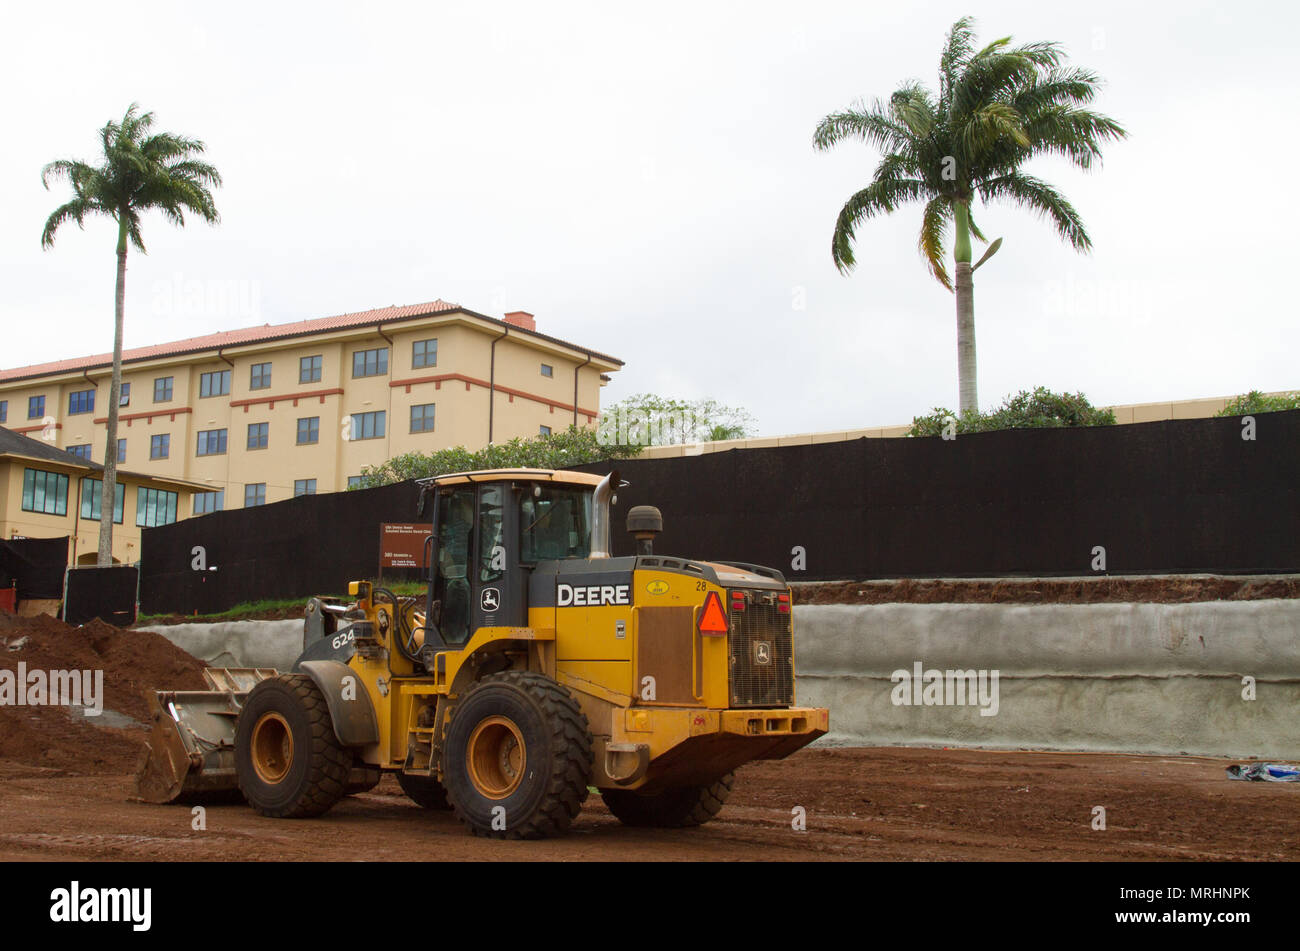 SCHOFIELD BARRACKS, Hawaii — A construction tractor rests in the dirt between its barrier and the clinic buildings that stand tall behind it. Swinerton Builders have been excavating and constructing within an area neighboring McCornack Road and the U.S. Army Health Clinic, here, before and after May 24. Employees of the company are manufacturing the new building that will provide a wider range of parking options for soldiers and civilians alike to use while under care at the clinic. Stock Photo